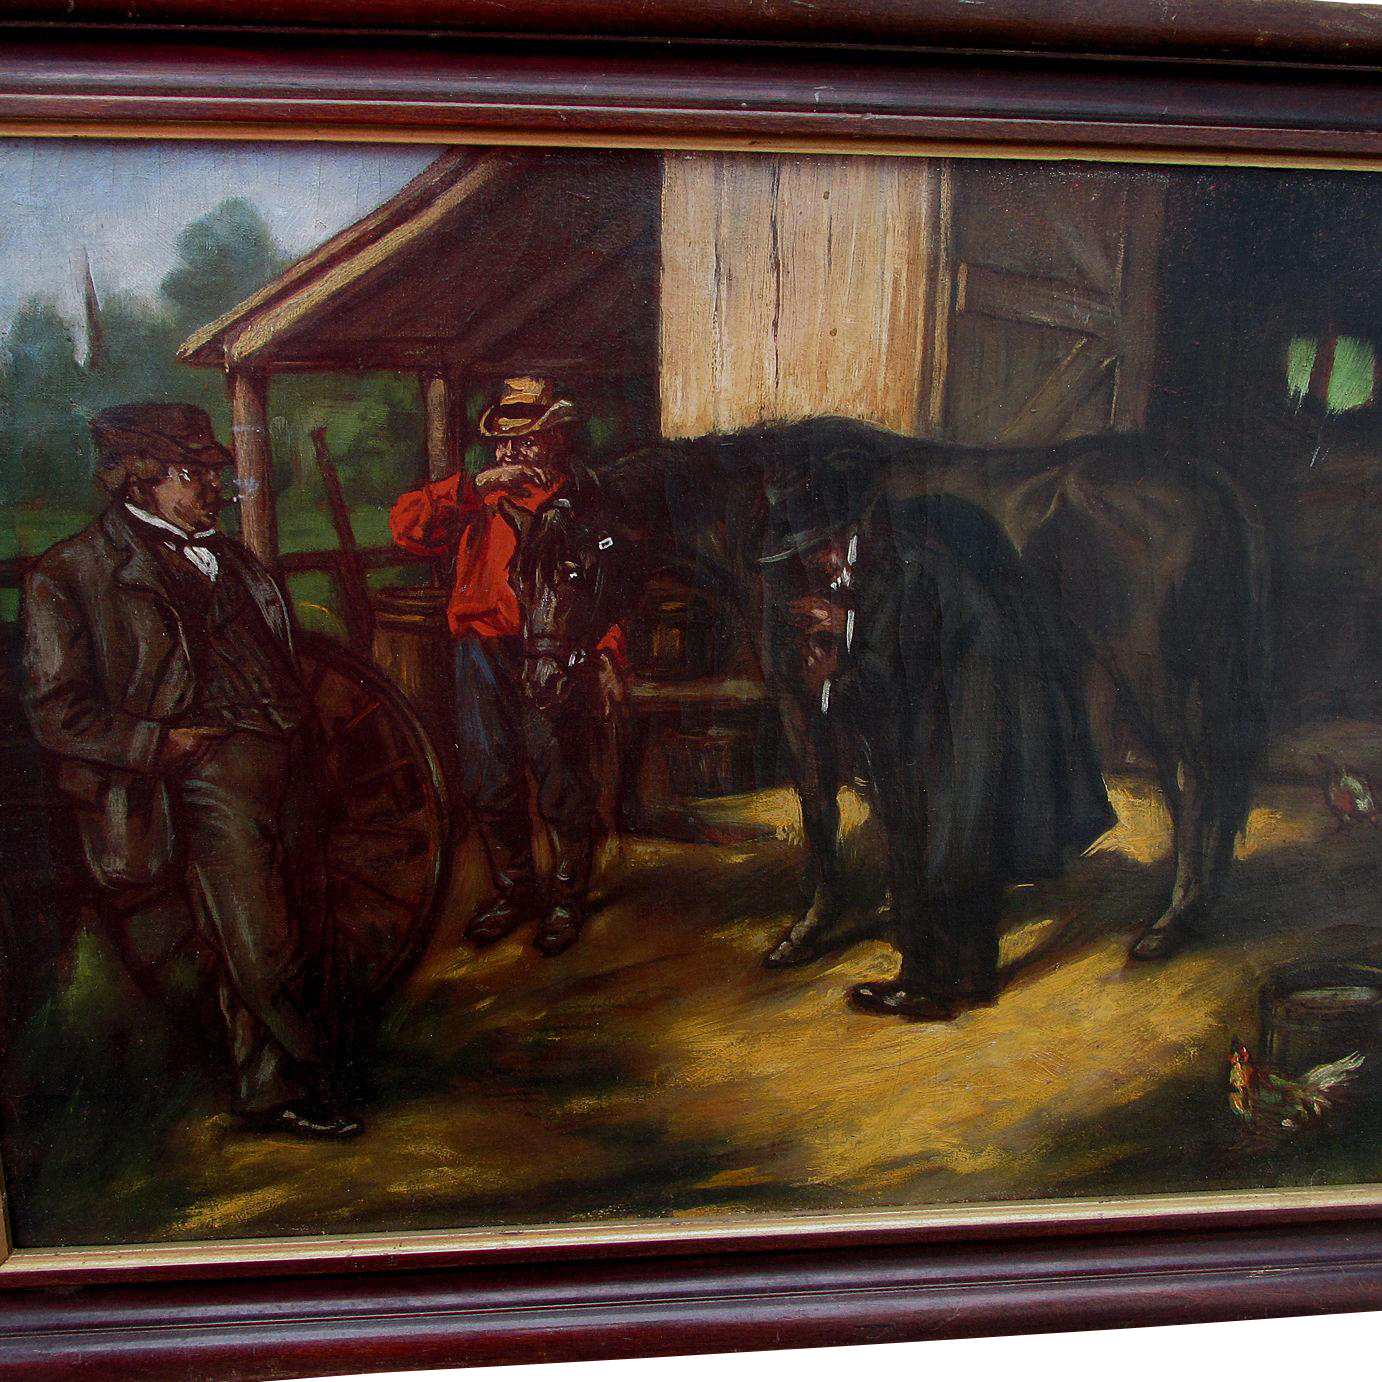 Antique Oil Painting of Country Veterinarian & Horse, Western